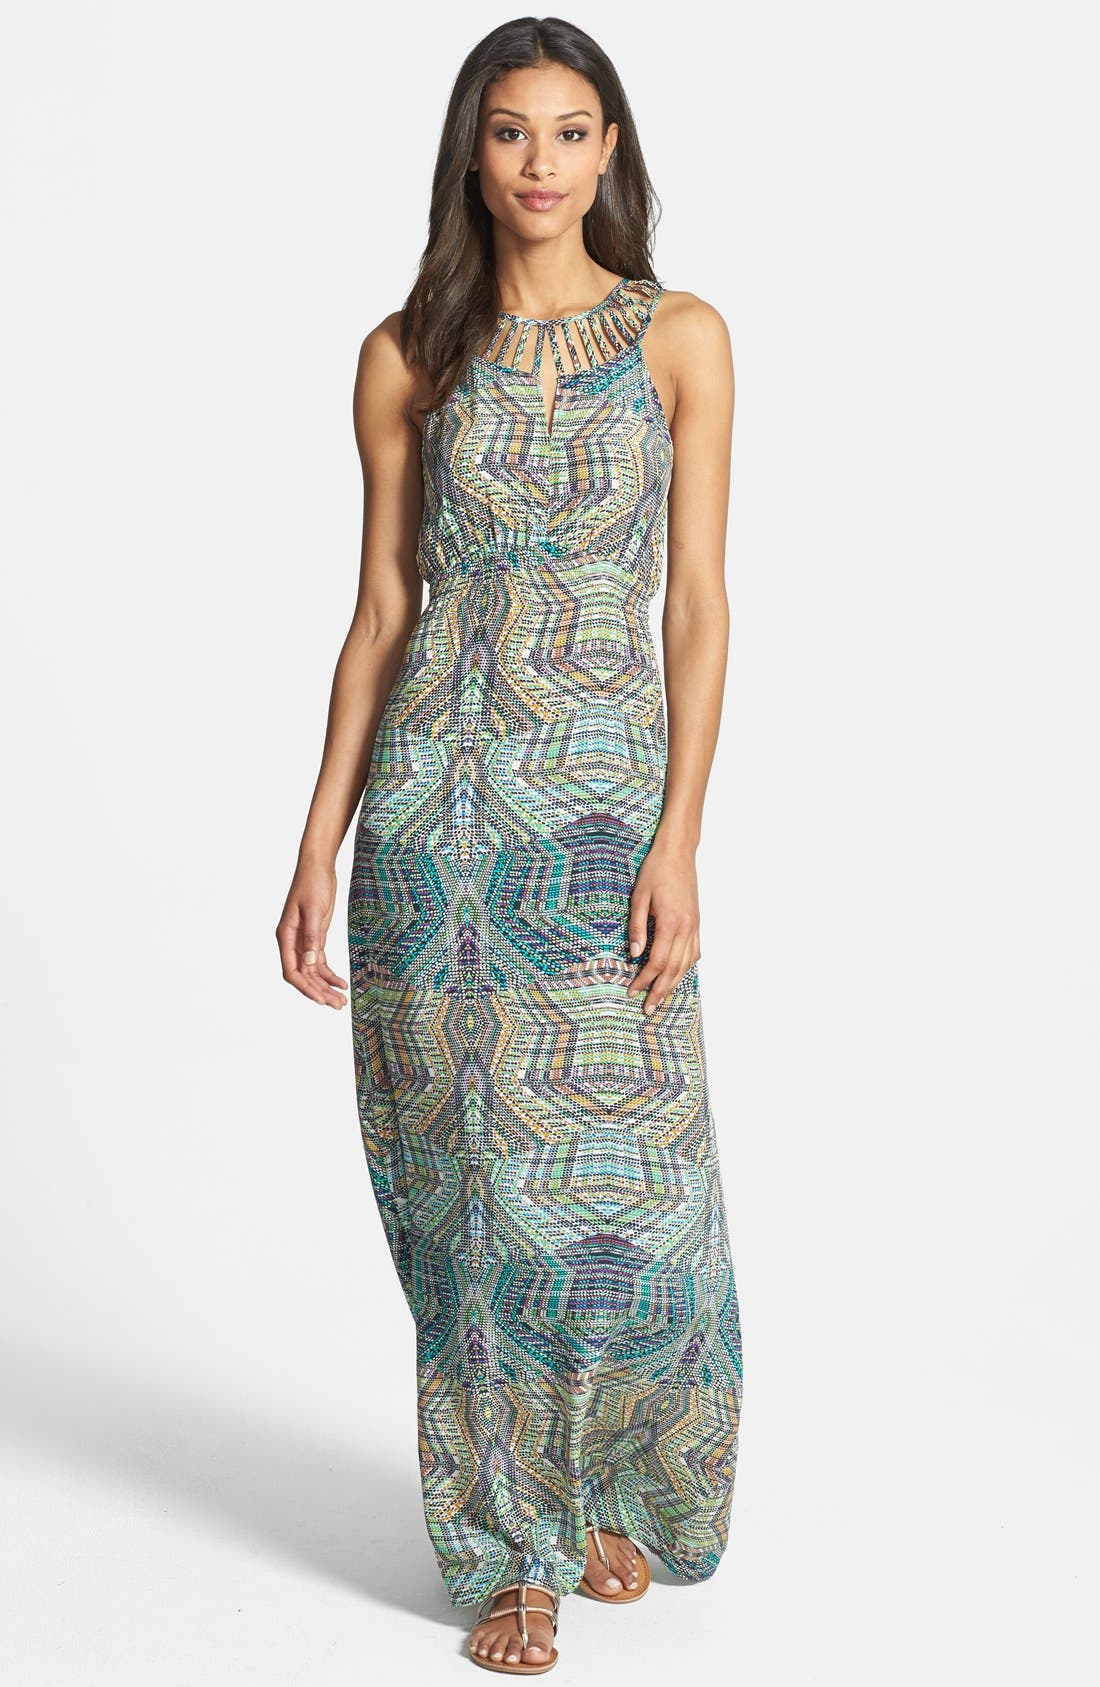 Alternate Image 1 Selected - Charlie Jade 'Jacy' Print Silk Crêpe de Chine Maxi Dress